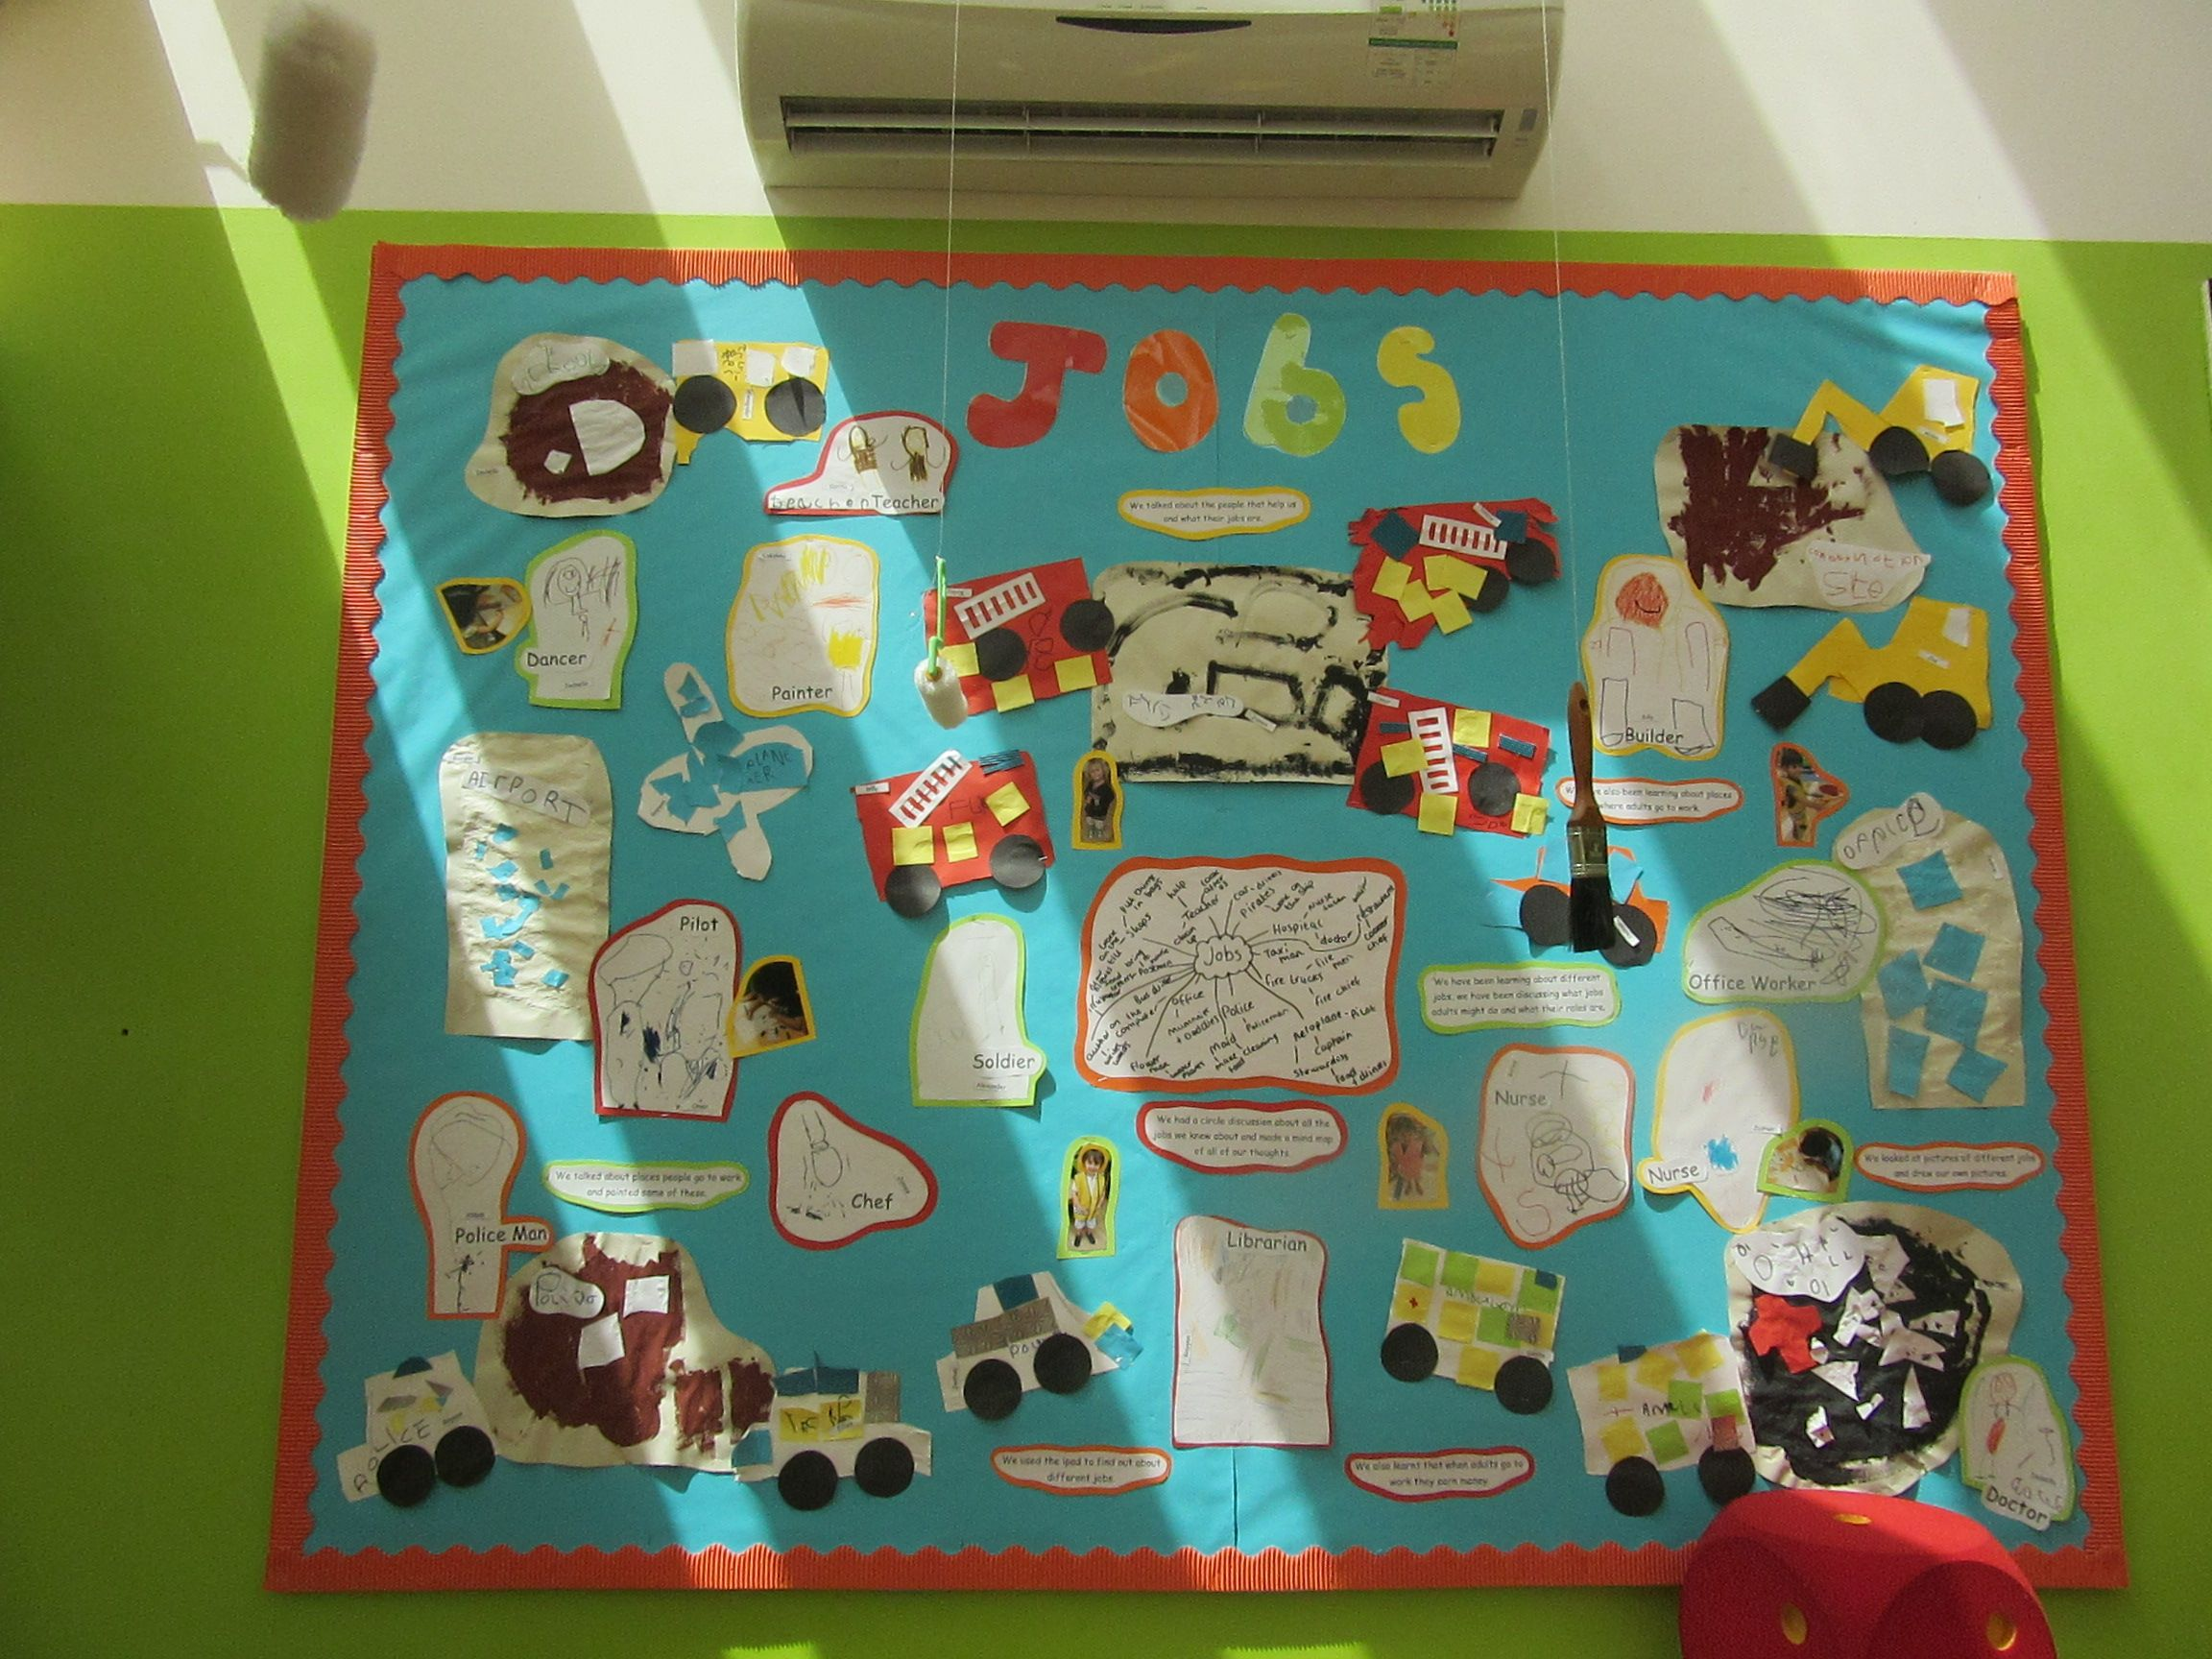 Jobs occupations and people who help us display eyfs